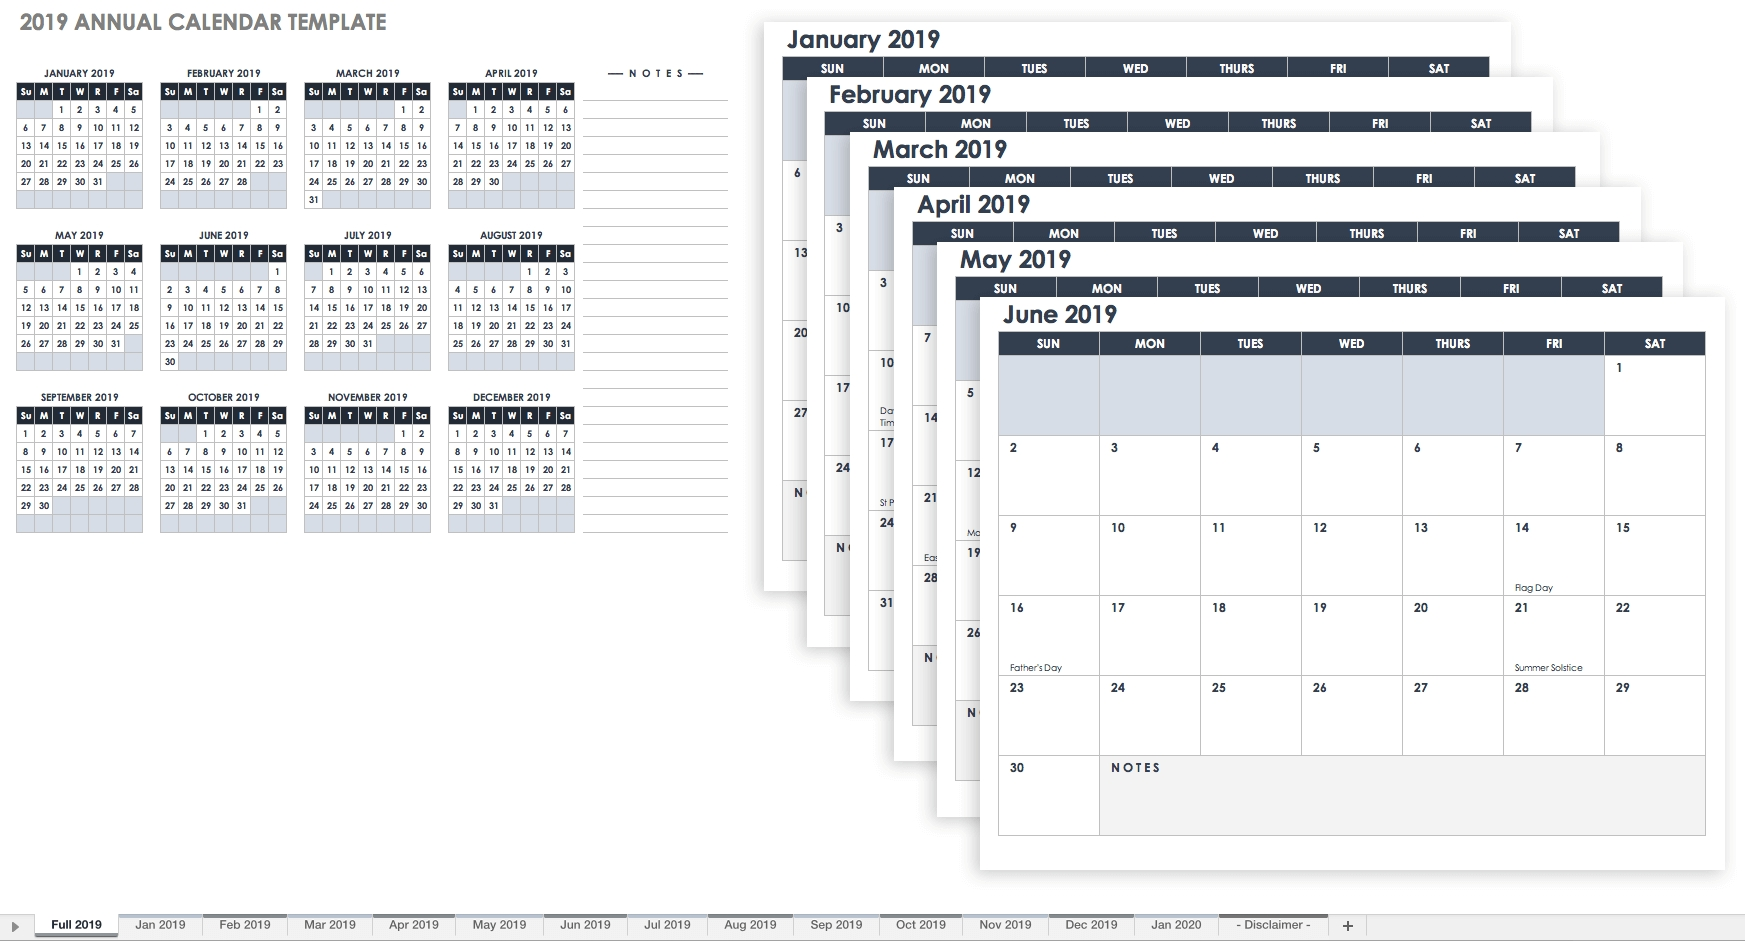 15 Free Monthly Calendar Templates | Smartsheet within Print Blank Calendar Month By Month